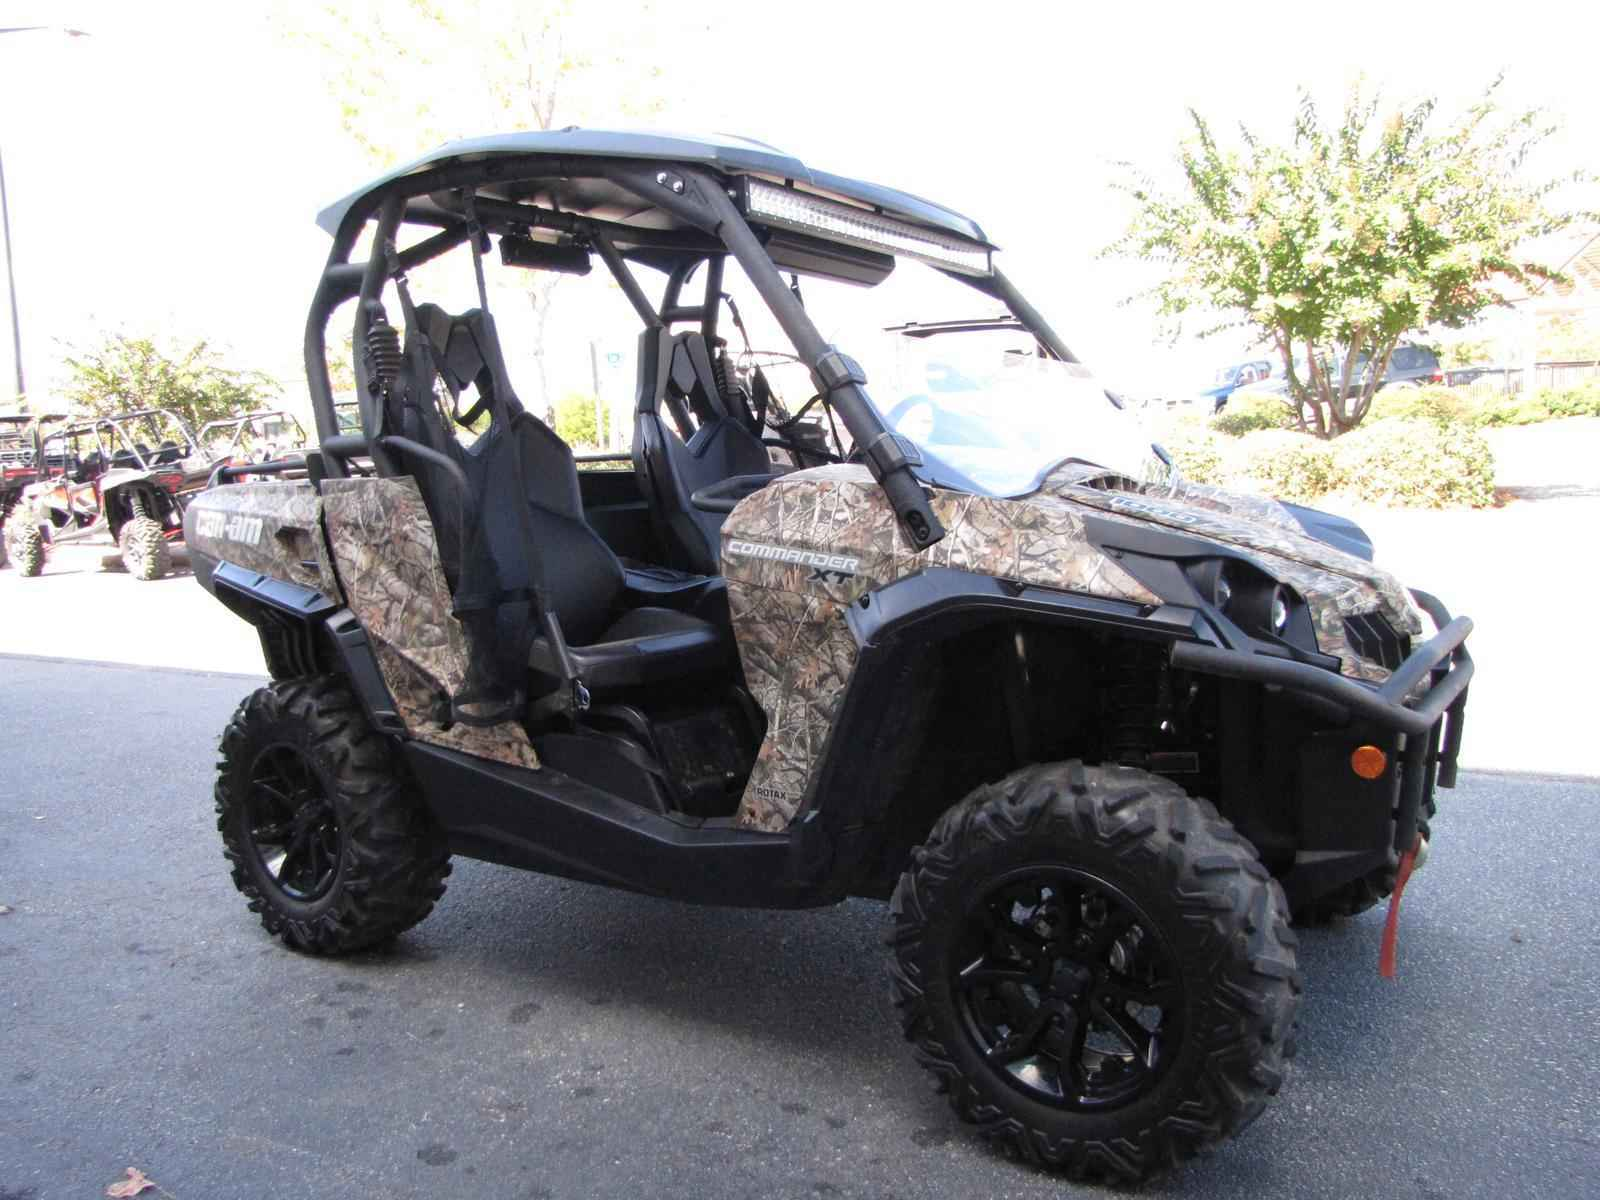 Used 2015 Can-Am Commander XT 1000 Camo ATVs For Sale in ...